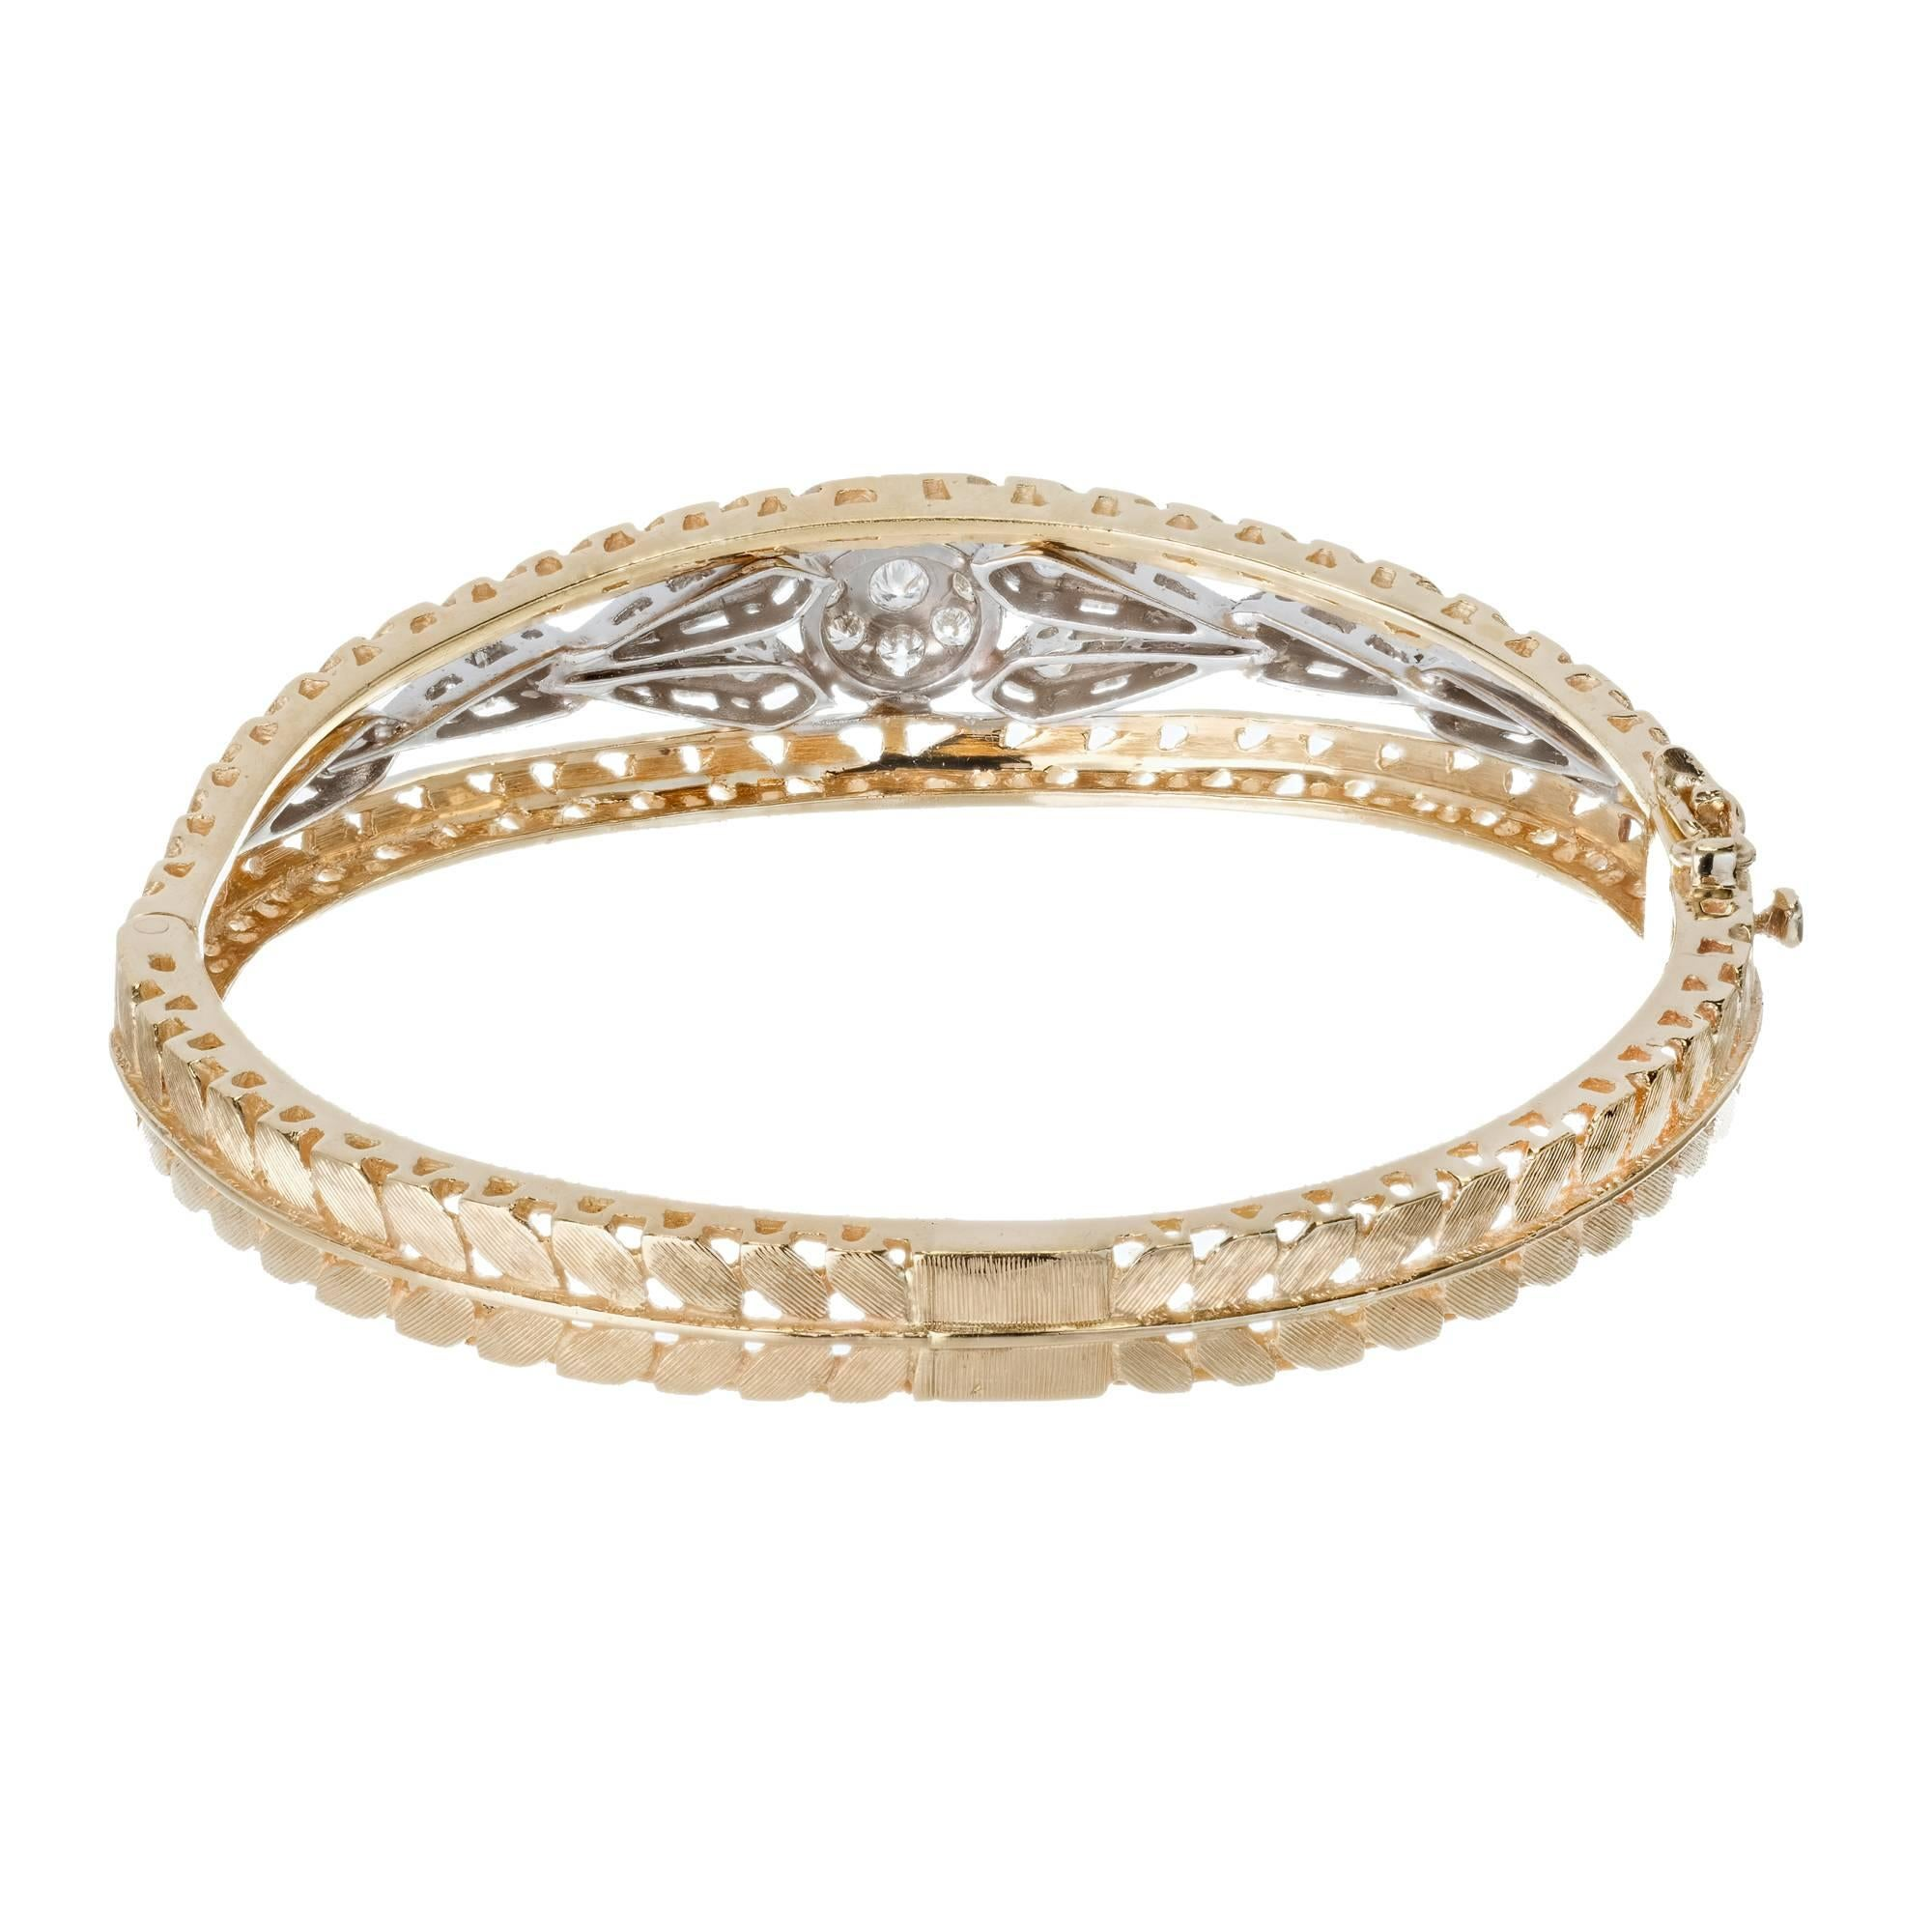 rose bangles pave jewelry in diamondland jewellery diamond bracelet bangle gold